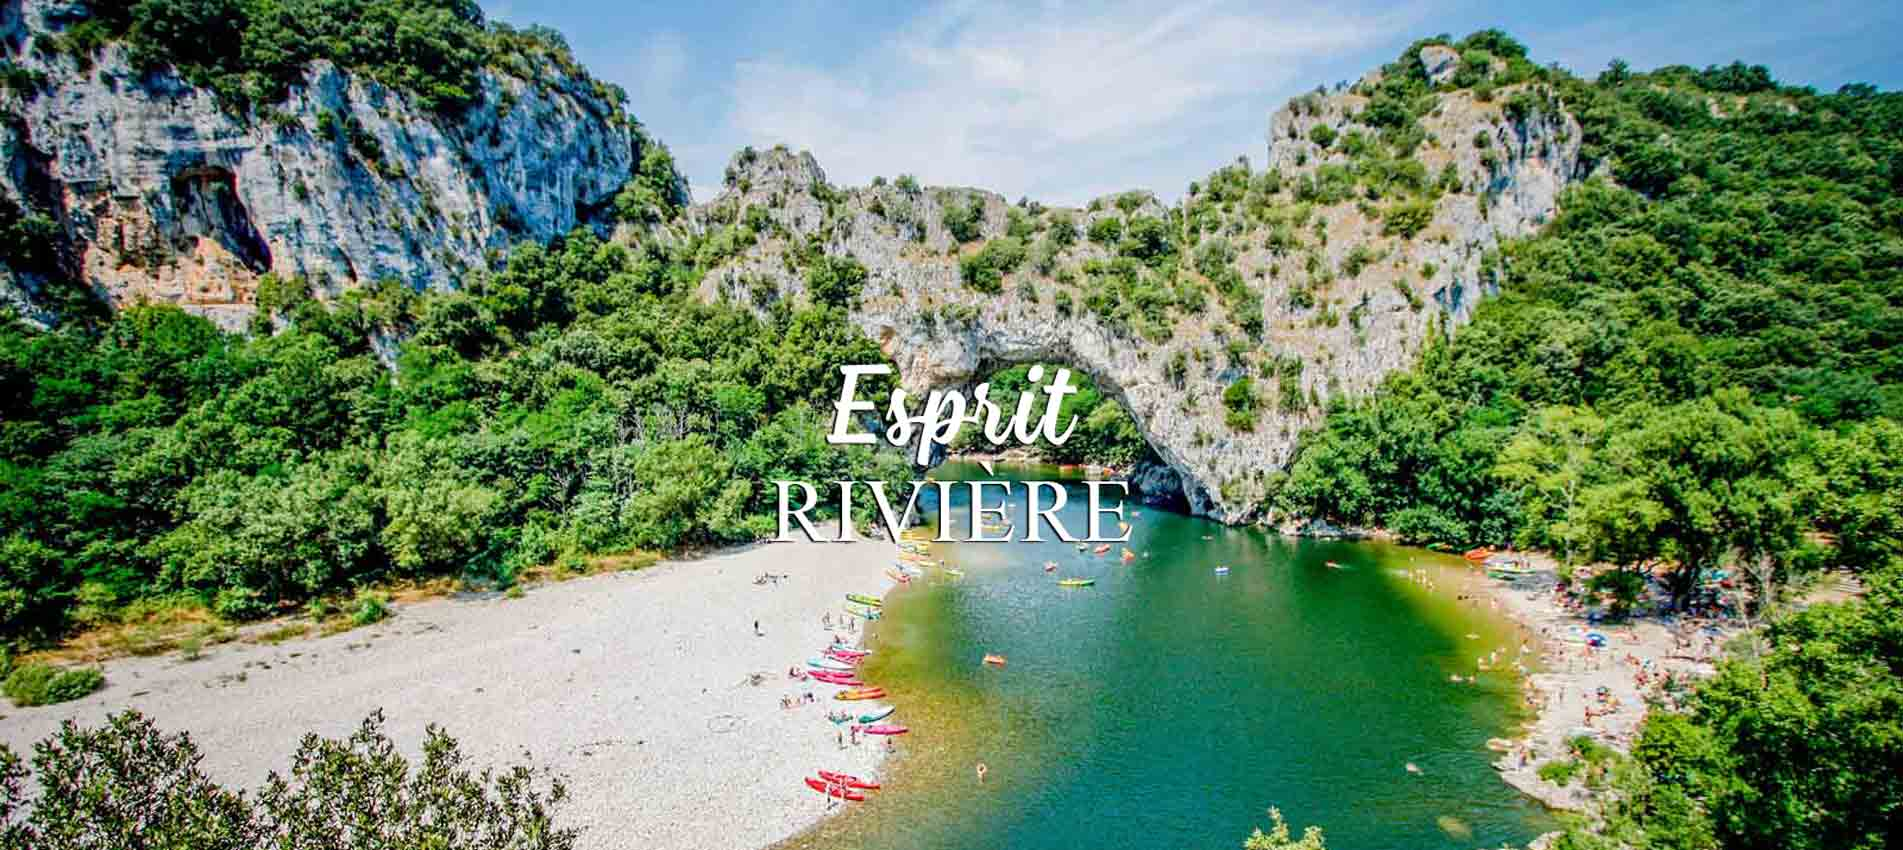 camping riviere location ardeche